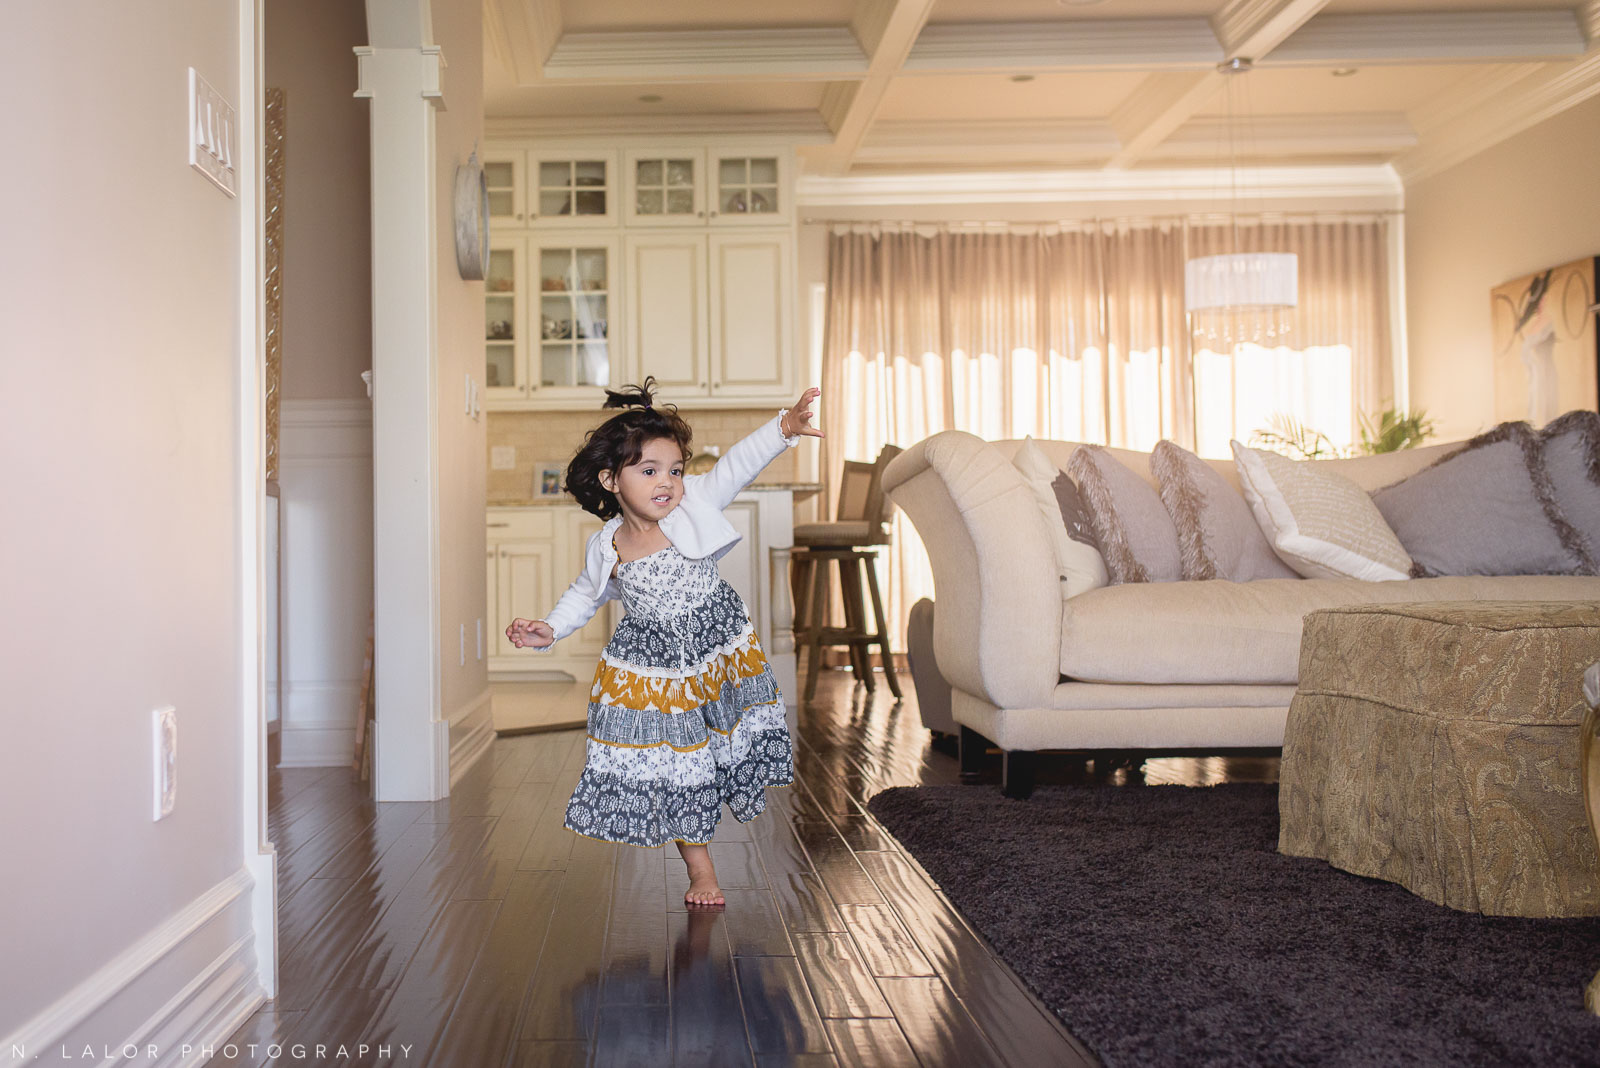 Happy little girl running around in her living room. Lifestyle portrait by N. Lalor Photography.